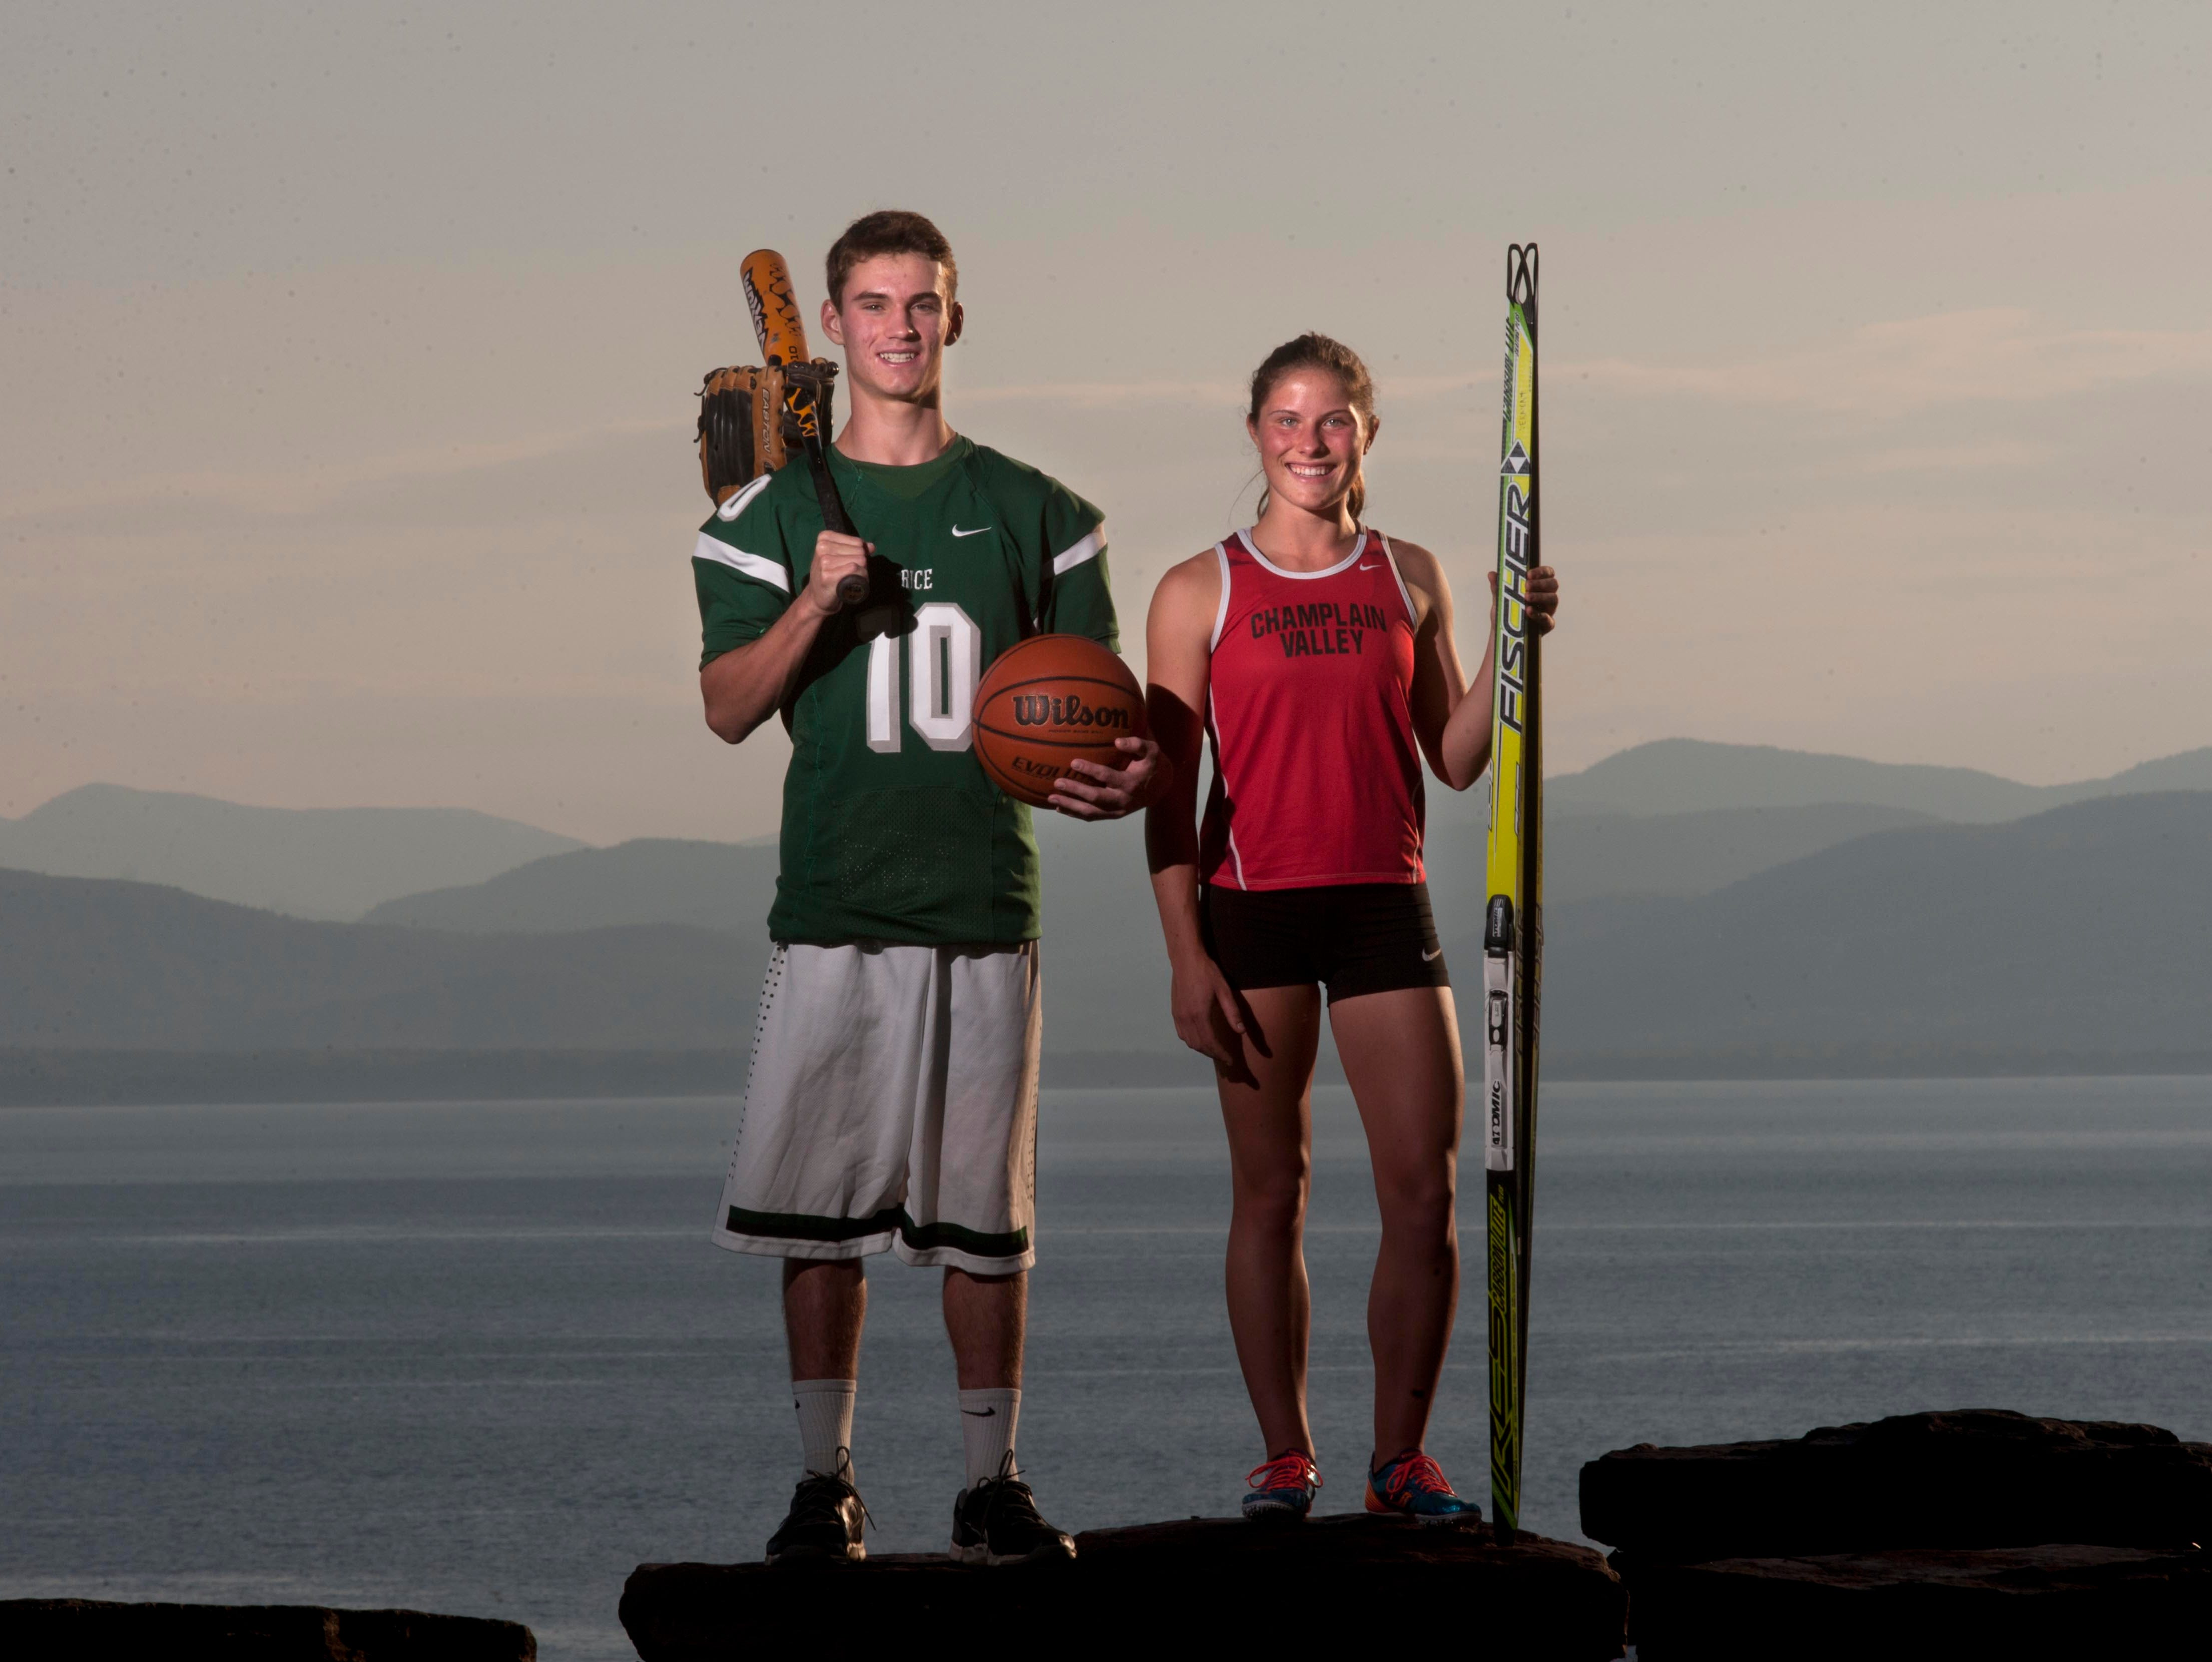 Athletes of the Year Tommy Fitzgerald of Rice Memorial and Autumn Eastman of CVU, seen at Battery Park in Burlington on Thursday, June 26, 2014.